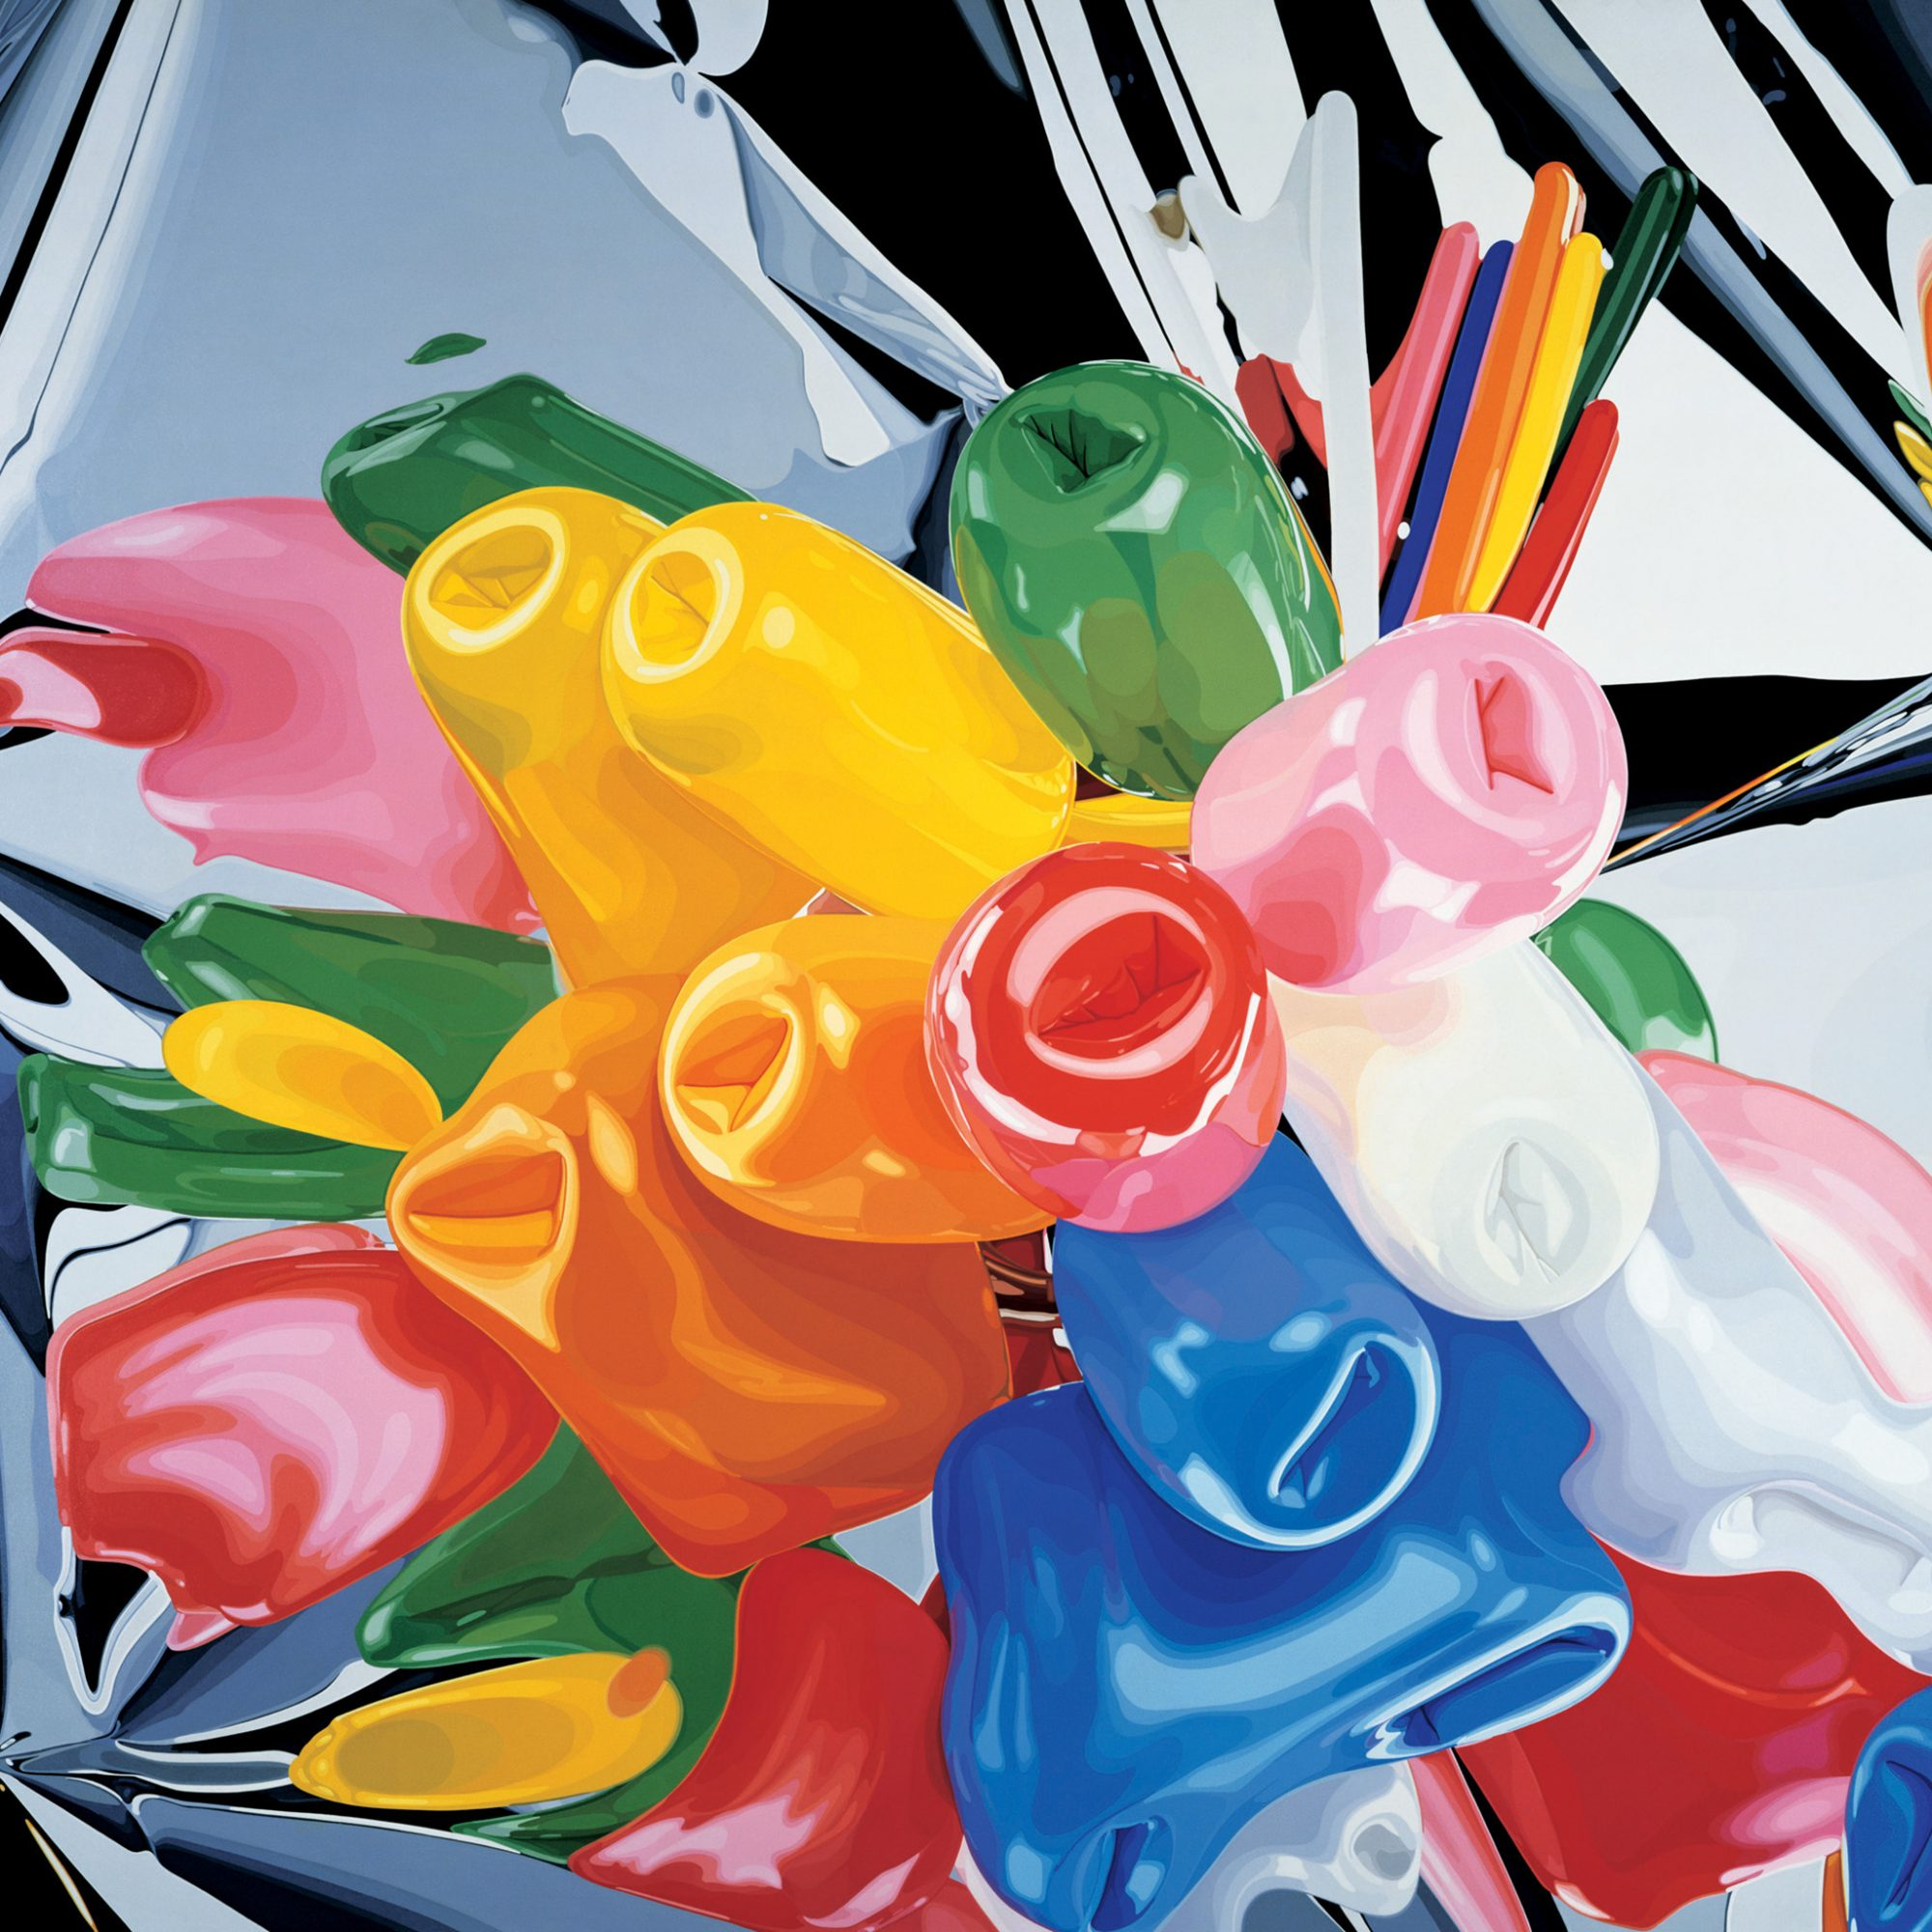 FWX JEFF KOONS CELEBRATION